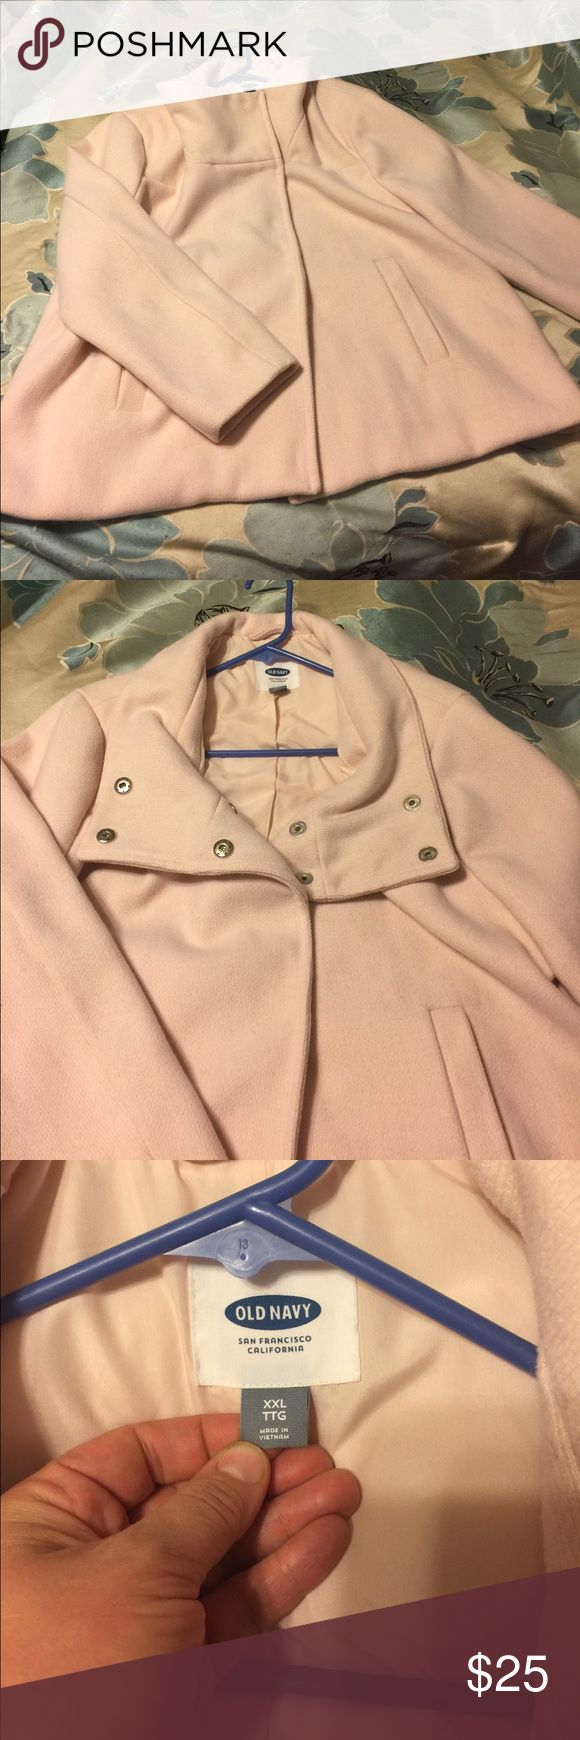 EUC pink Pea coat Old navy pink pea coat, EUC   Too big for me now.  Very flattering!  The neckline is adorable in the different ways you can style.  Size XXL Old Navy Jackets & Coats Pea Coats